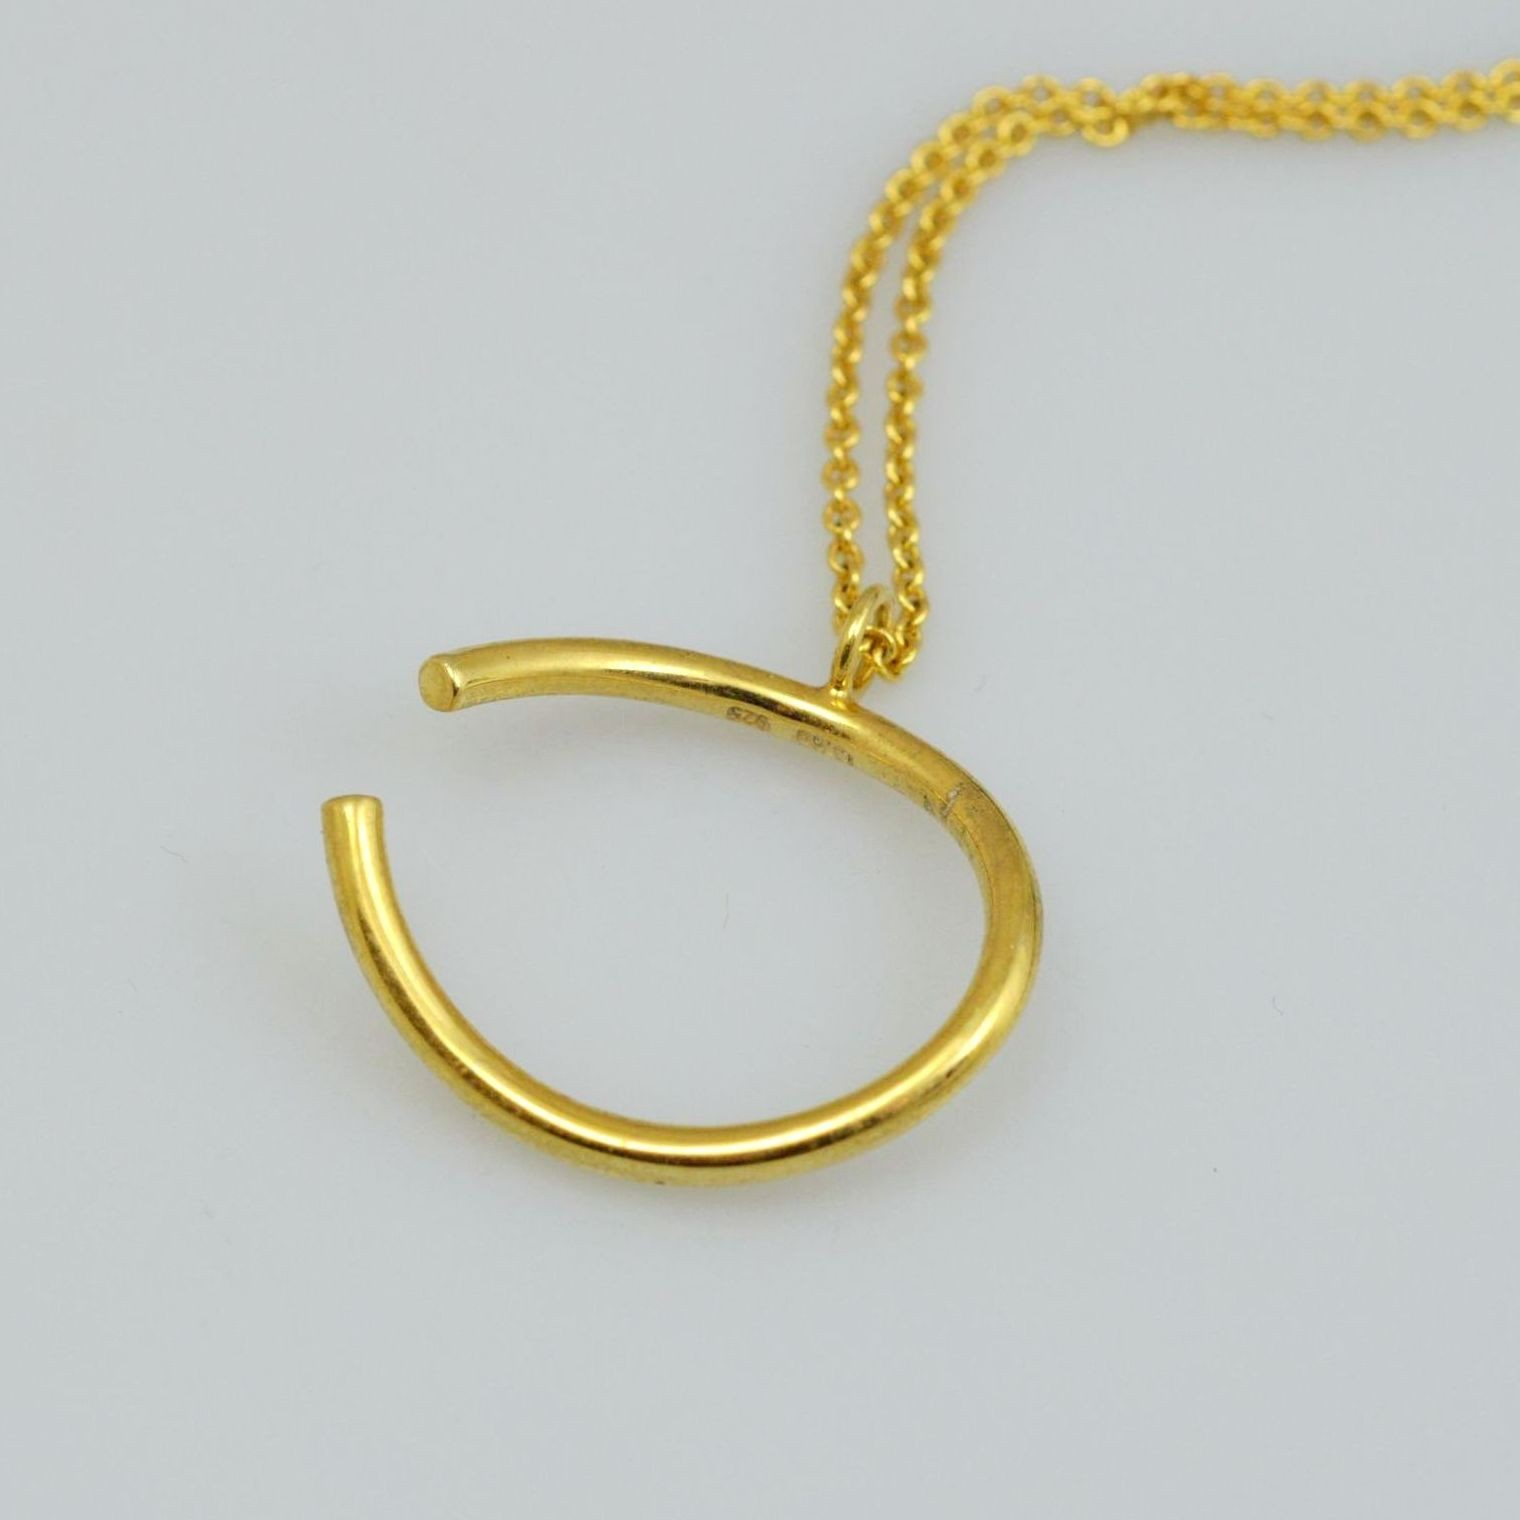 Silver pendant 925 gold plated